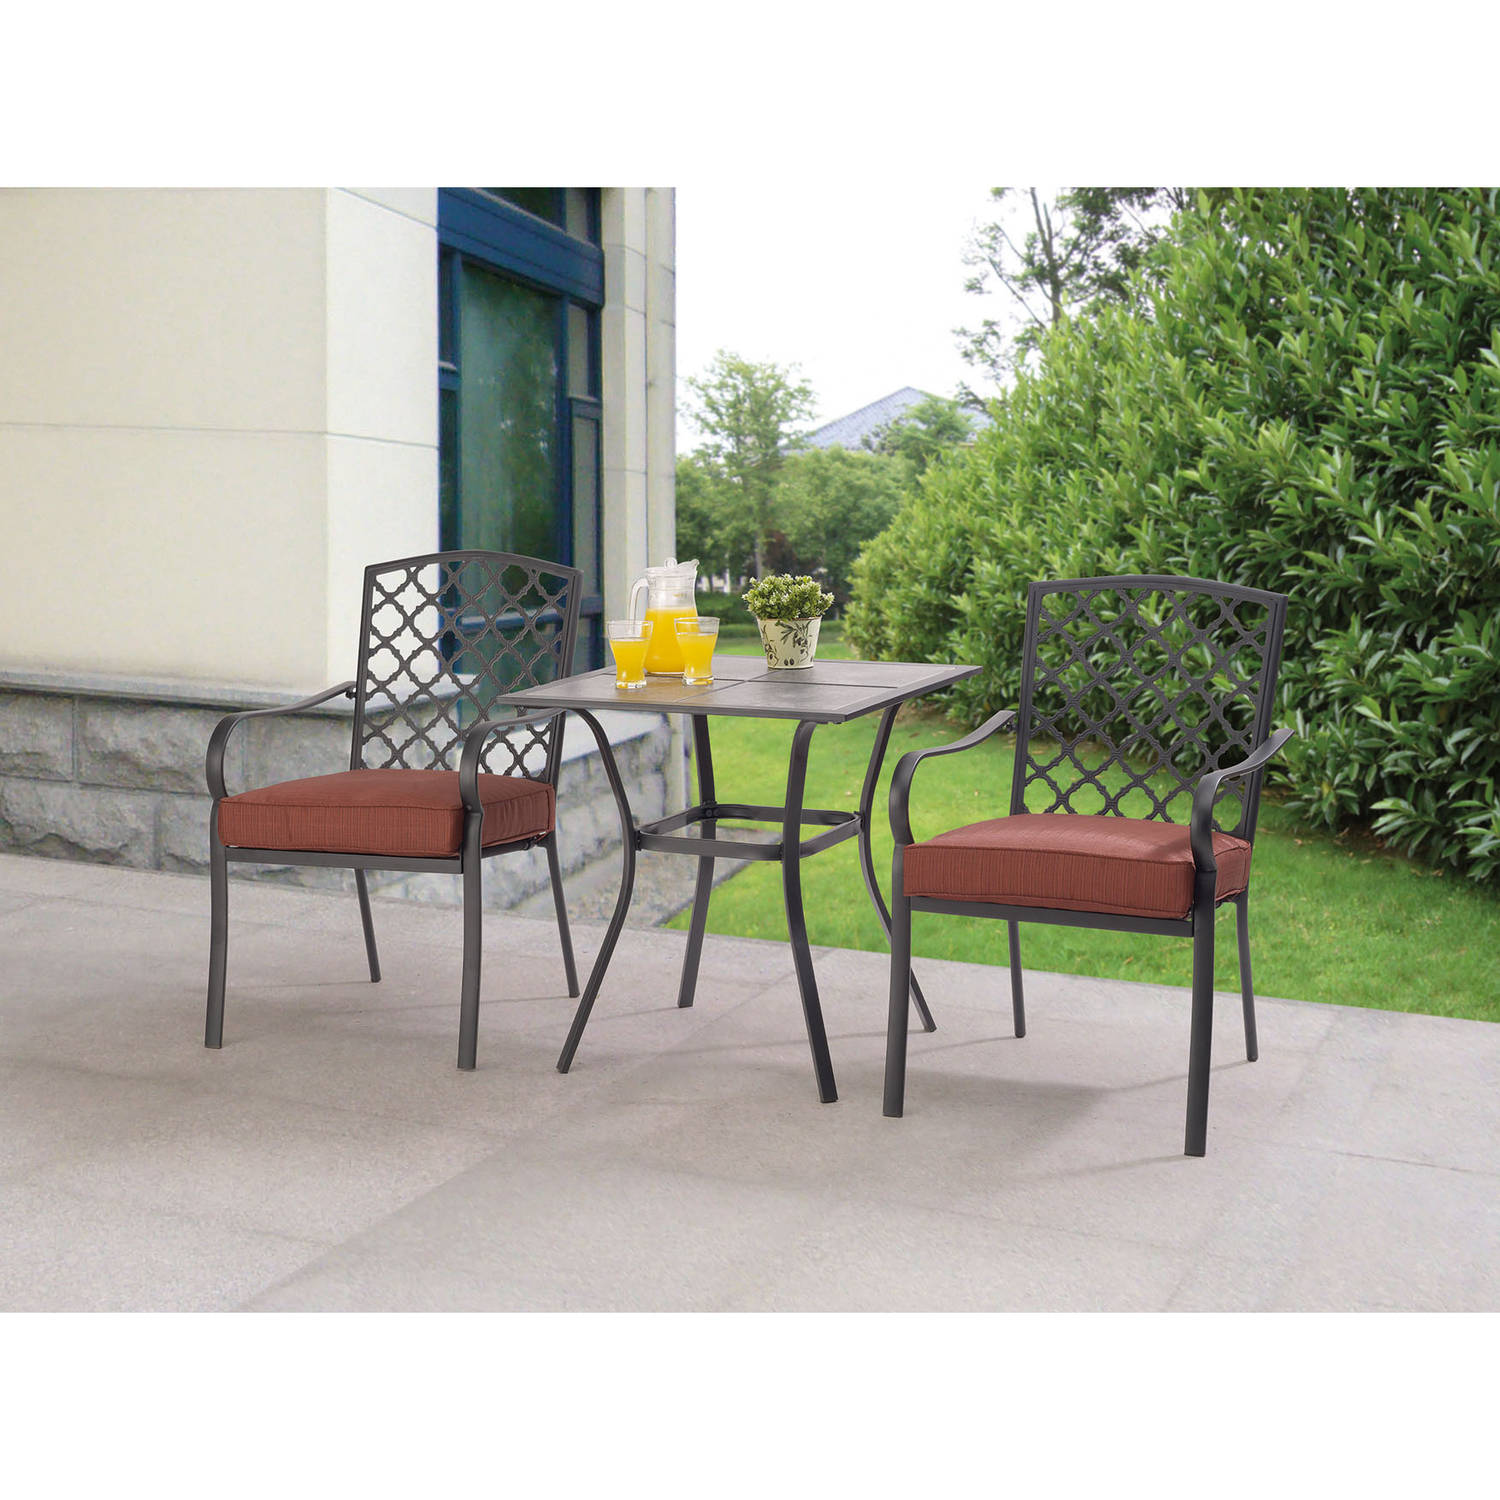 mainstays grayson court 3 piece bistro set ebay. Black Bedroom Furniture Sets. Home Design Ideas